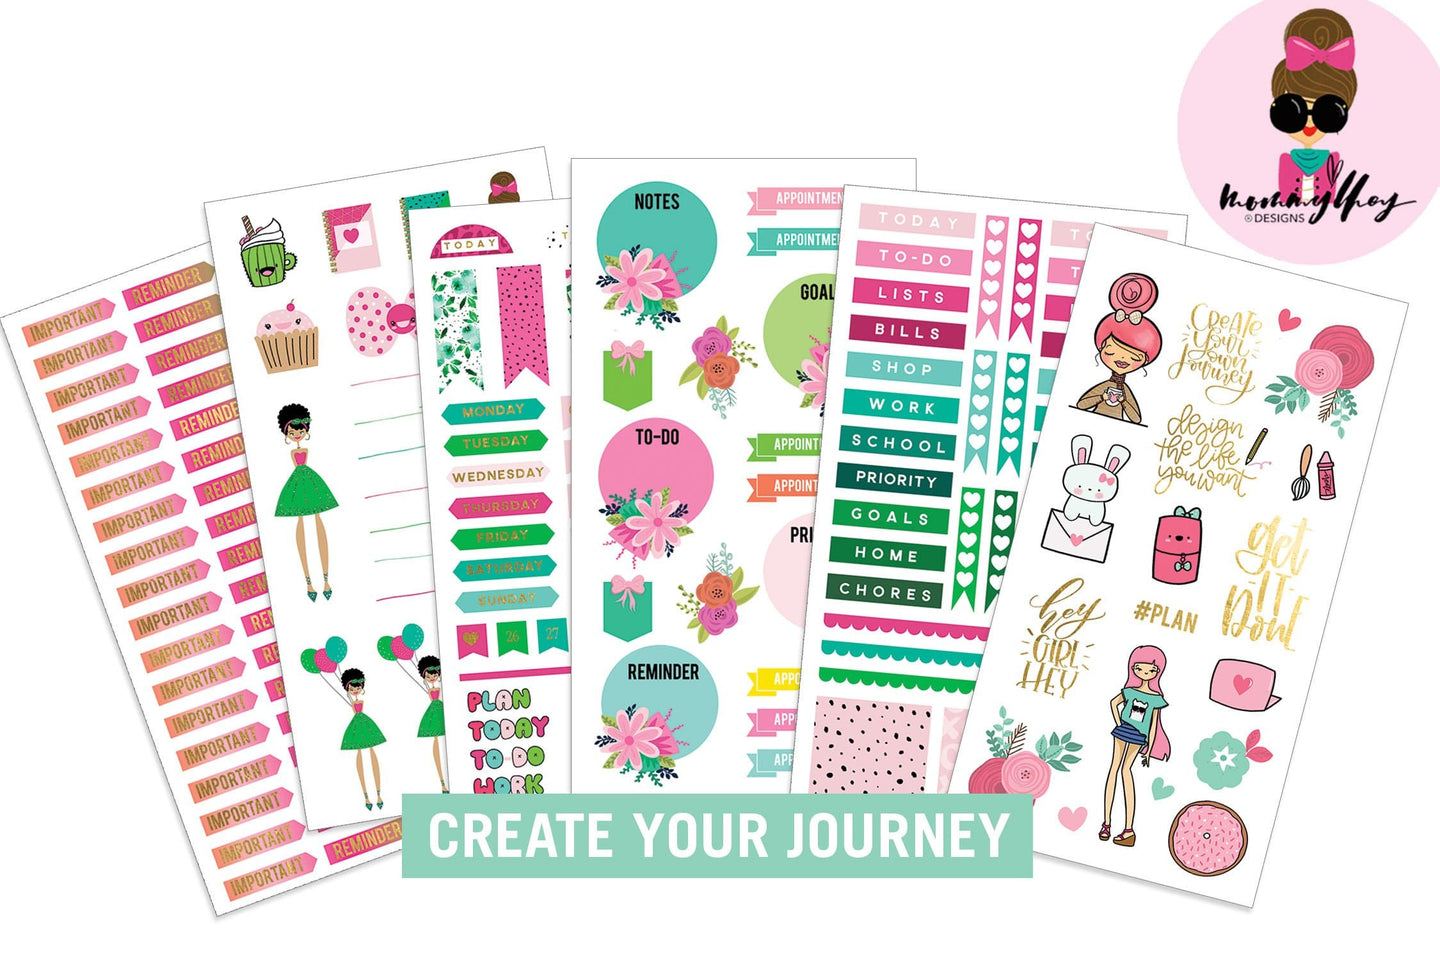 Mommy Lhey- Create Your Journey Sticker Kit